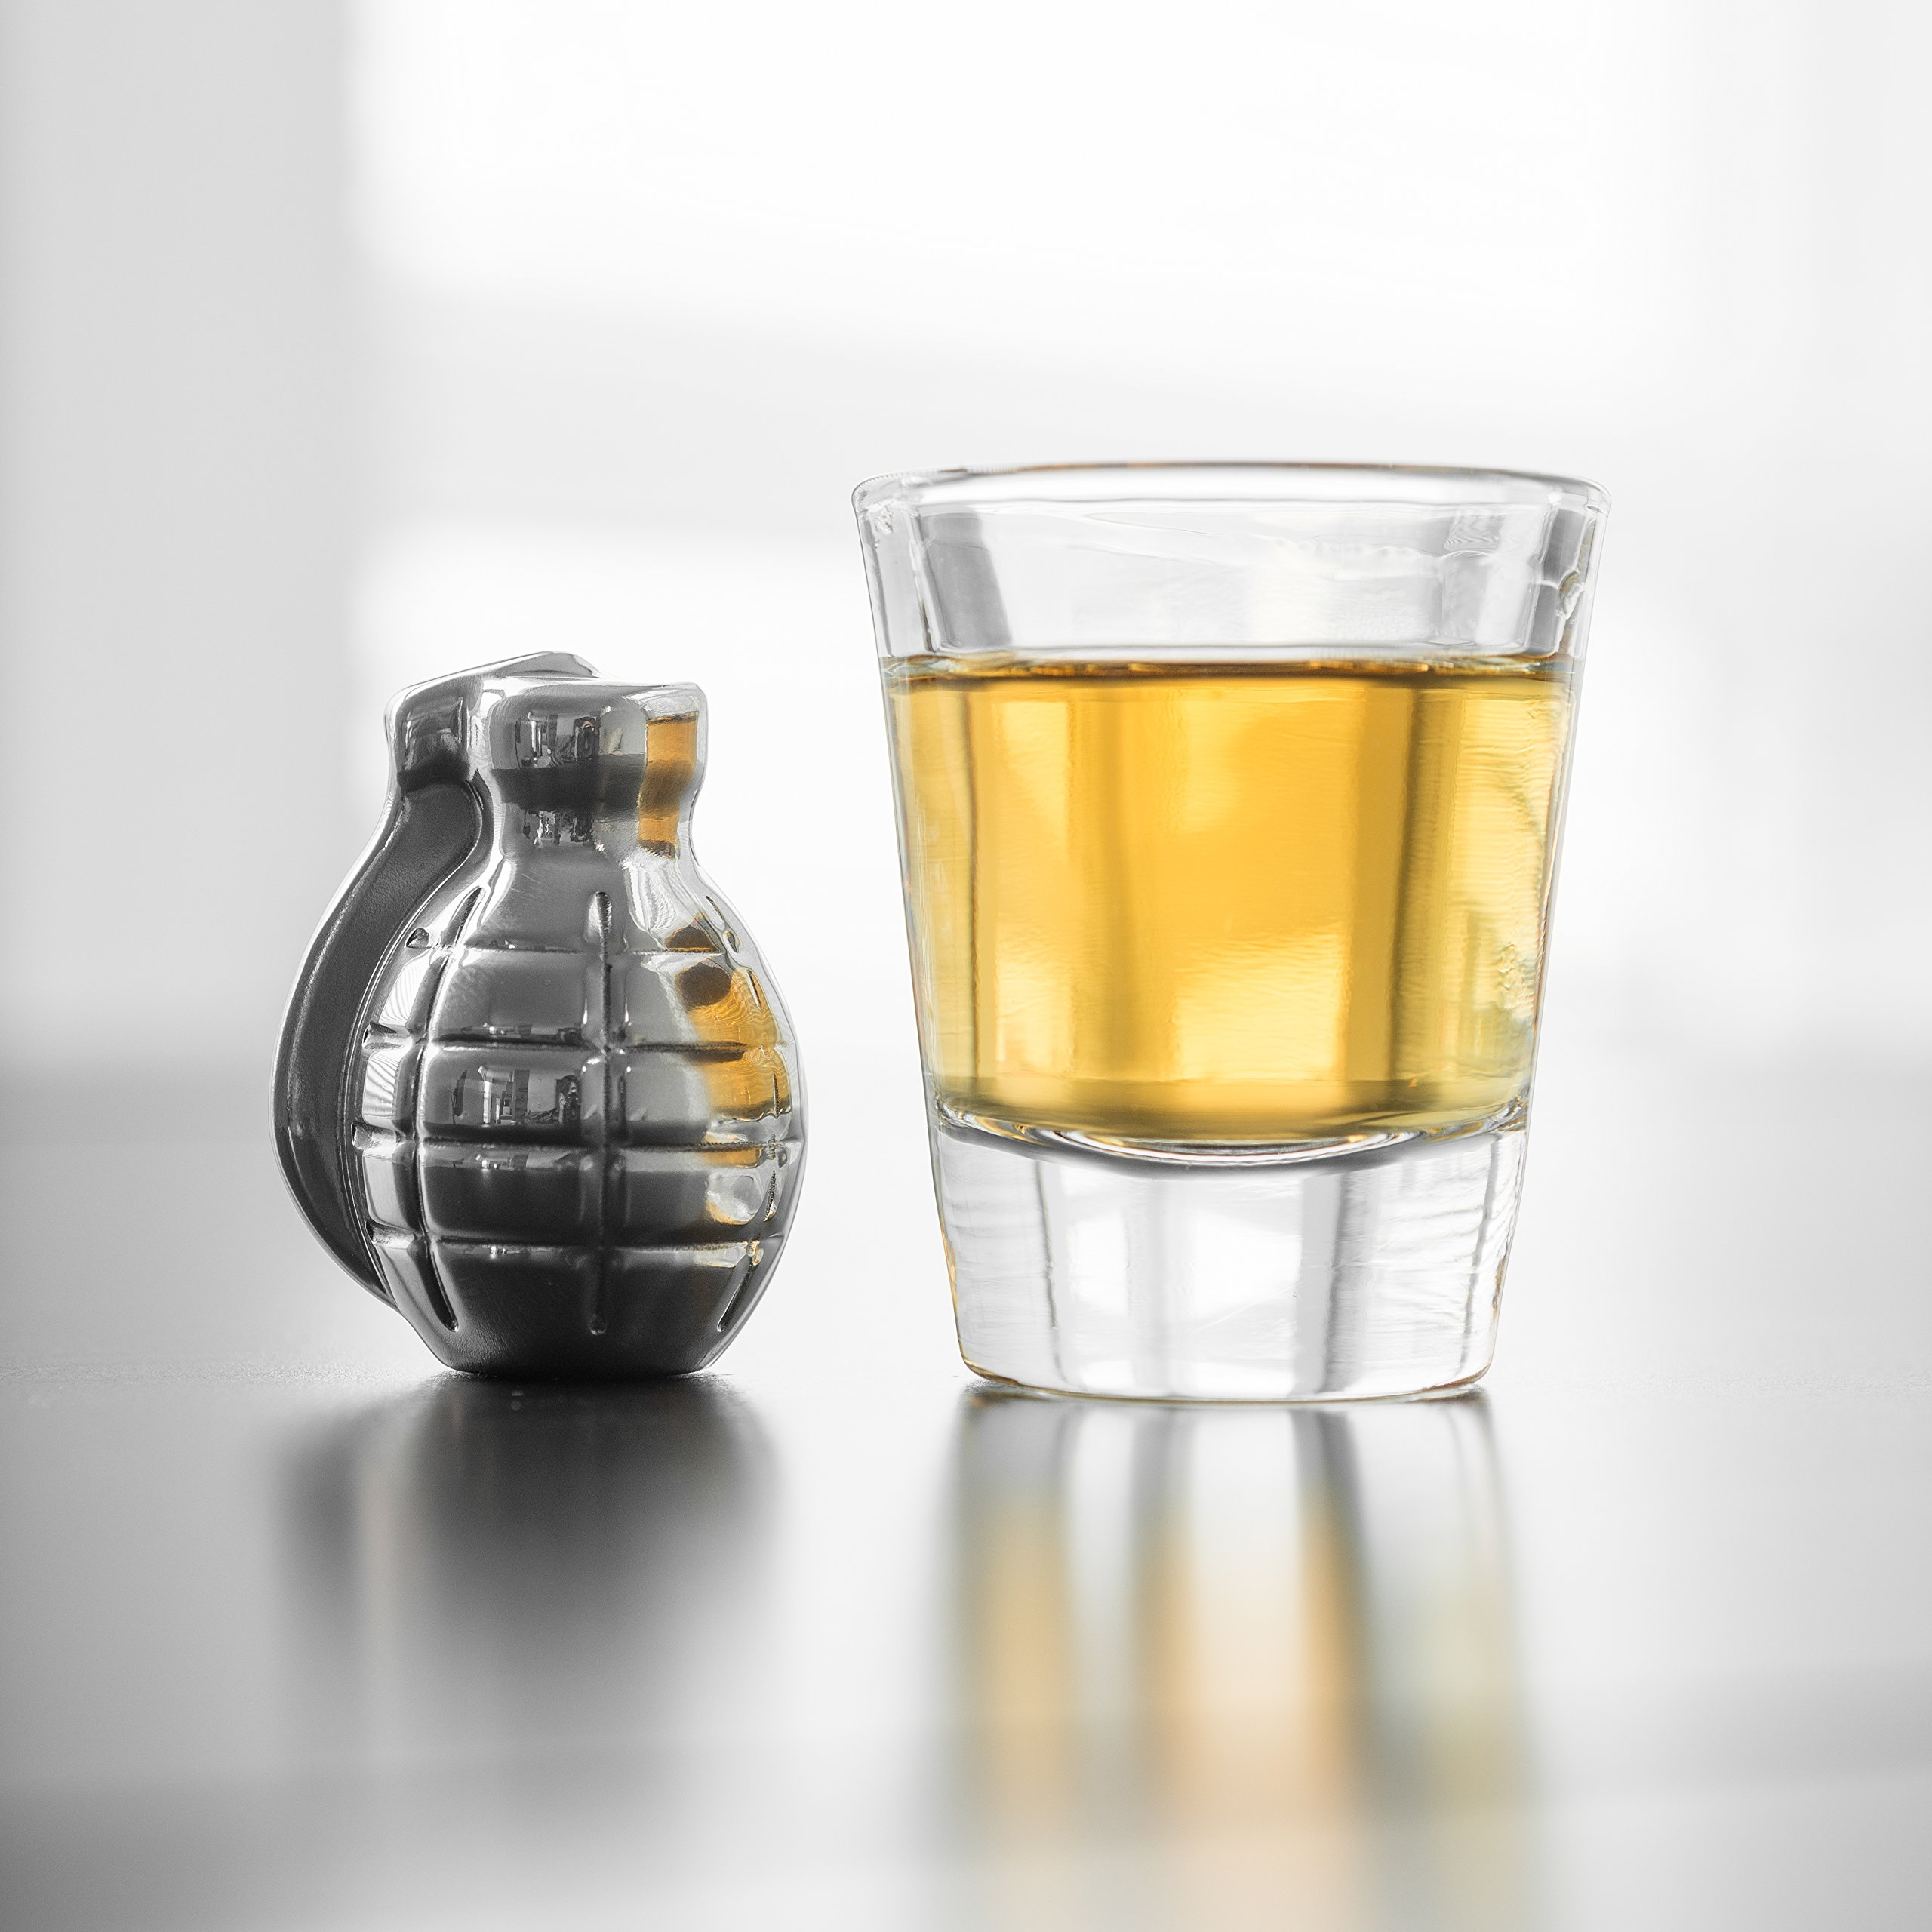 Whiskey Stones Grenade Shaped Stainless Steel with Storage Bag (Set of 4) by BarMe (Image #9)